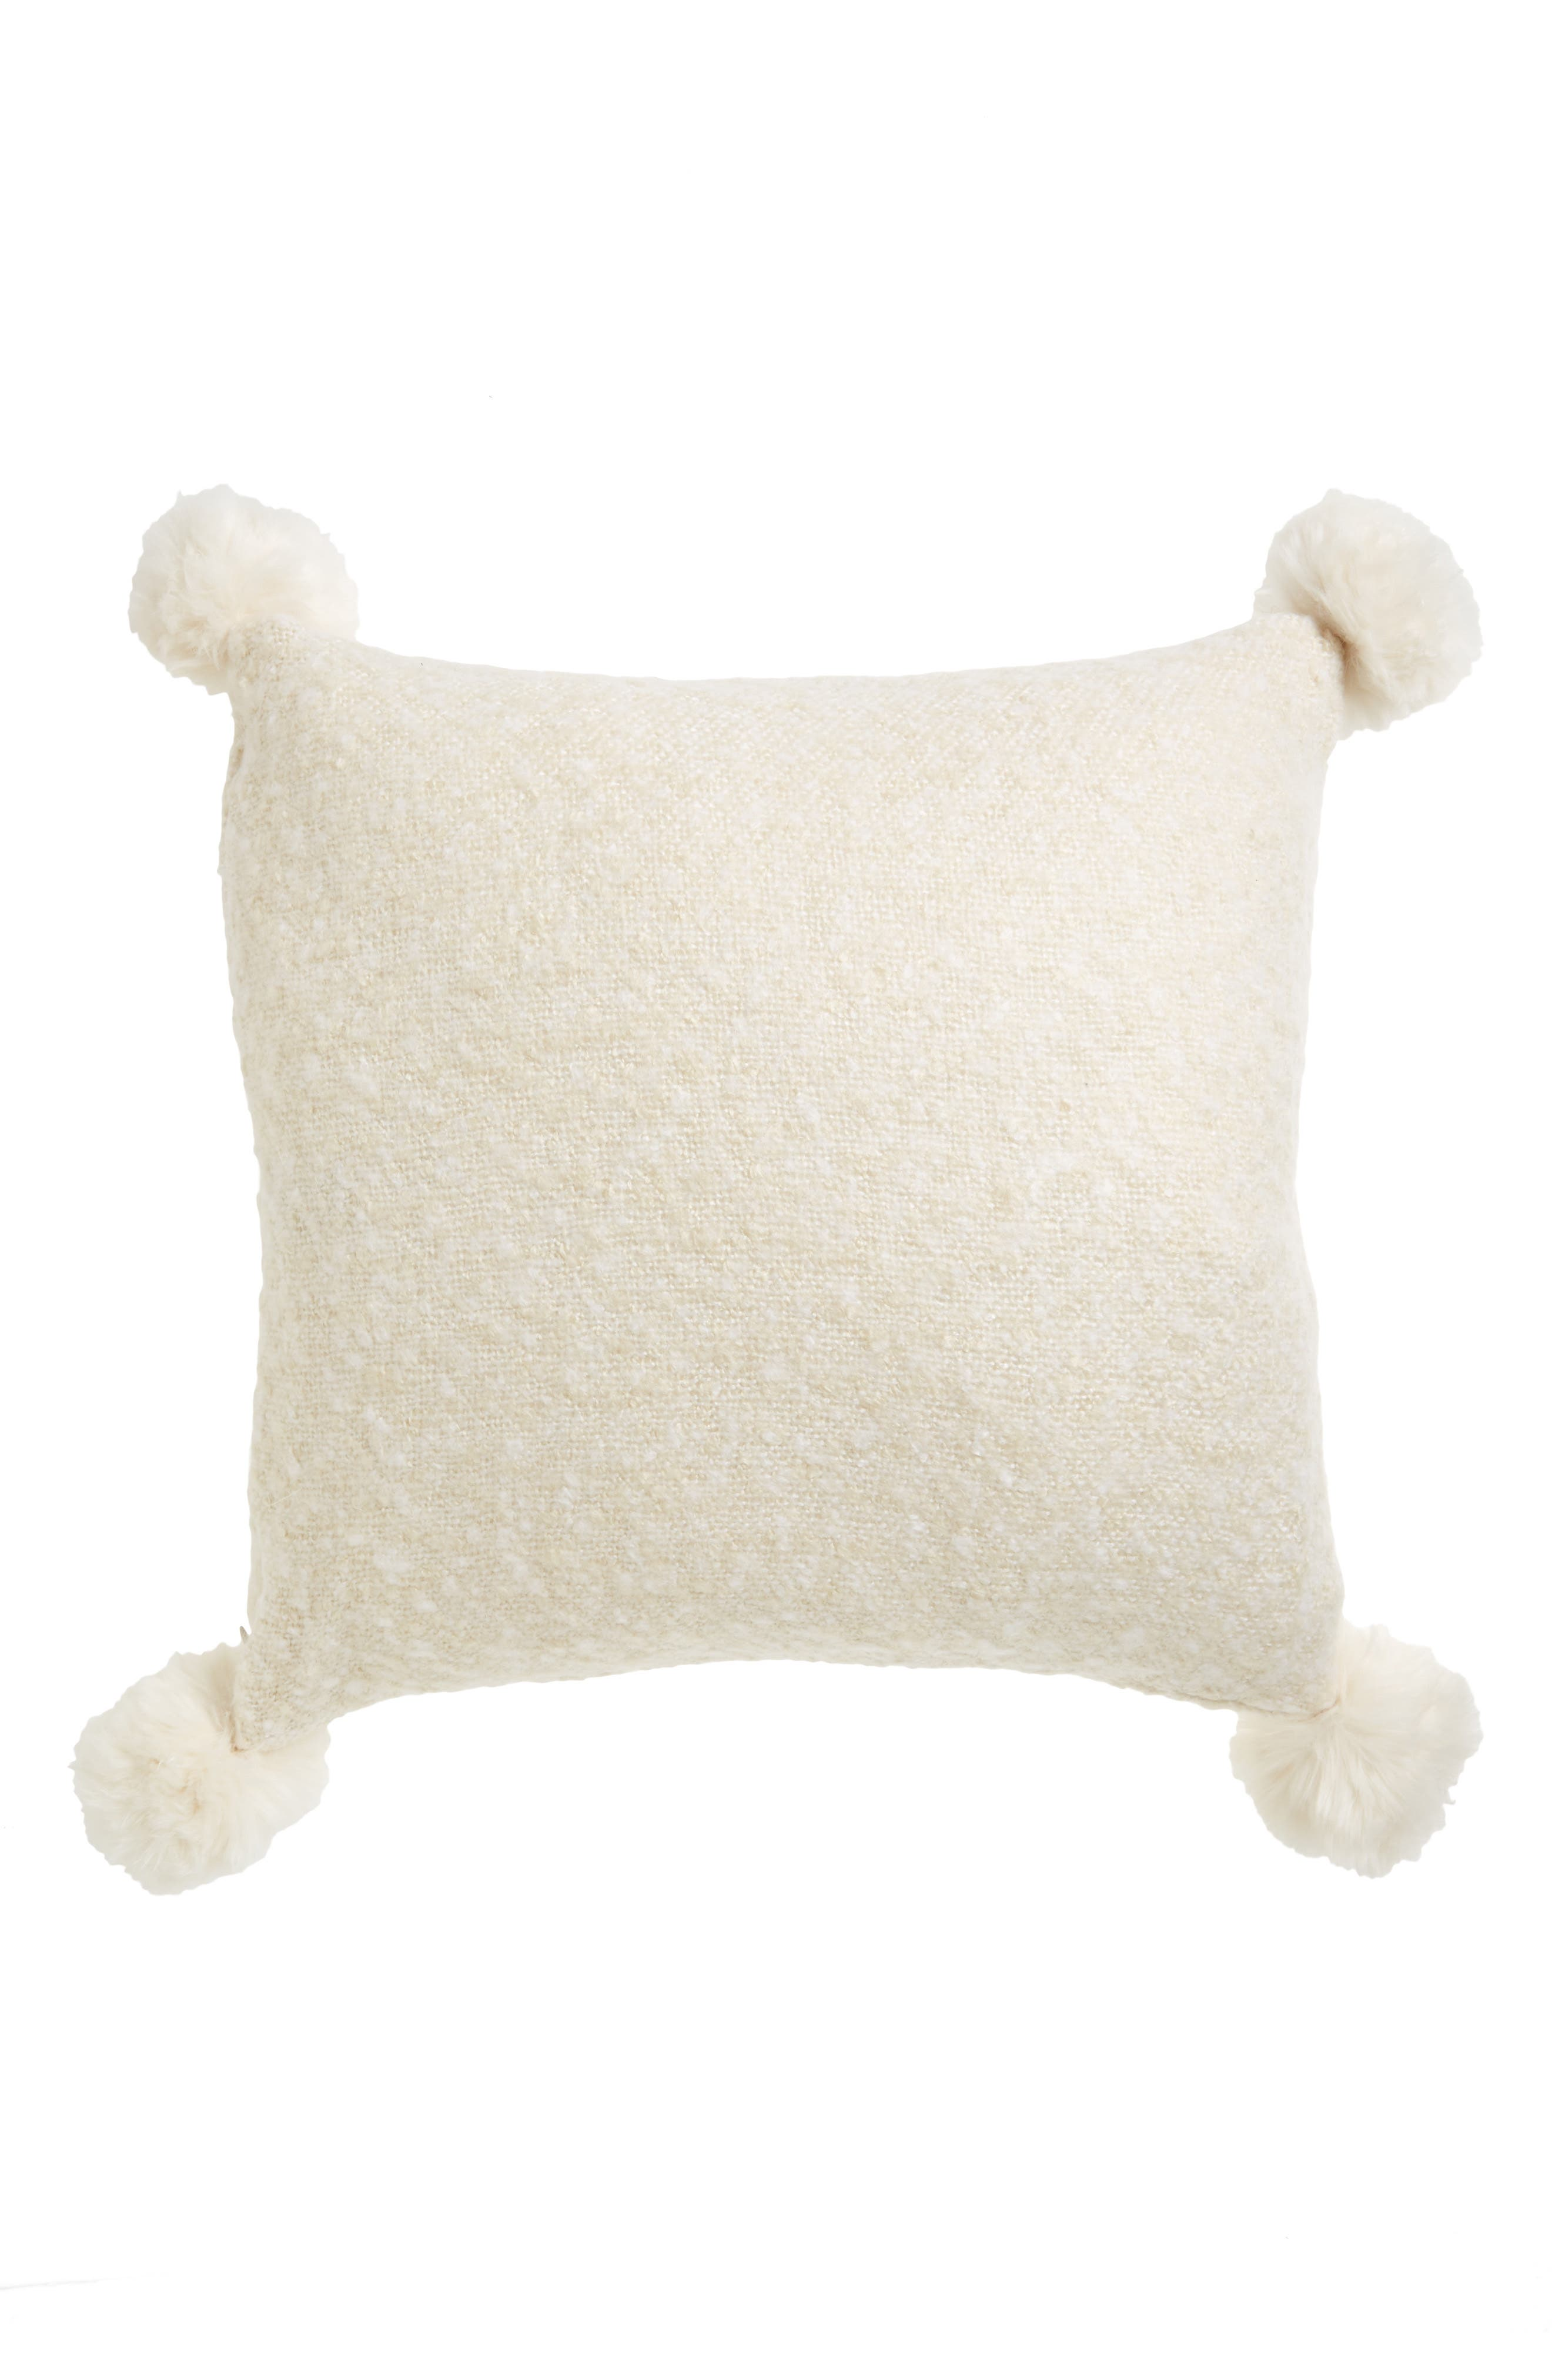 Awesome Nordstrom At Home Brushed Accent Pillow With Pompoms